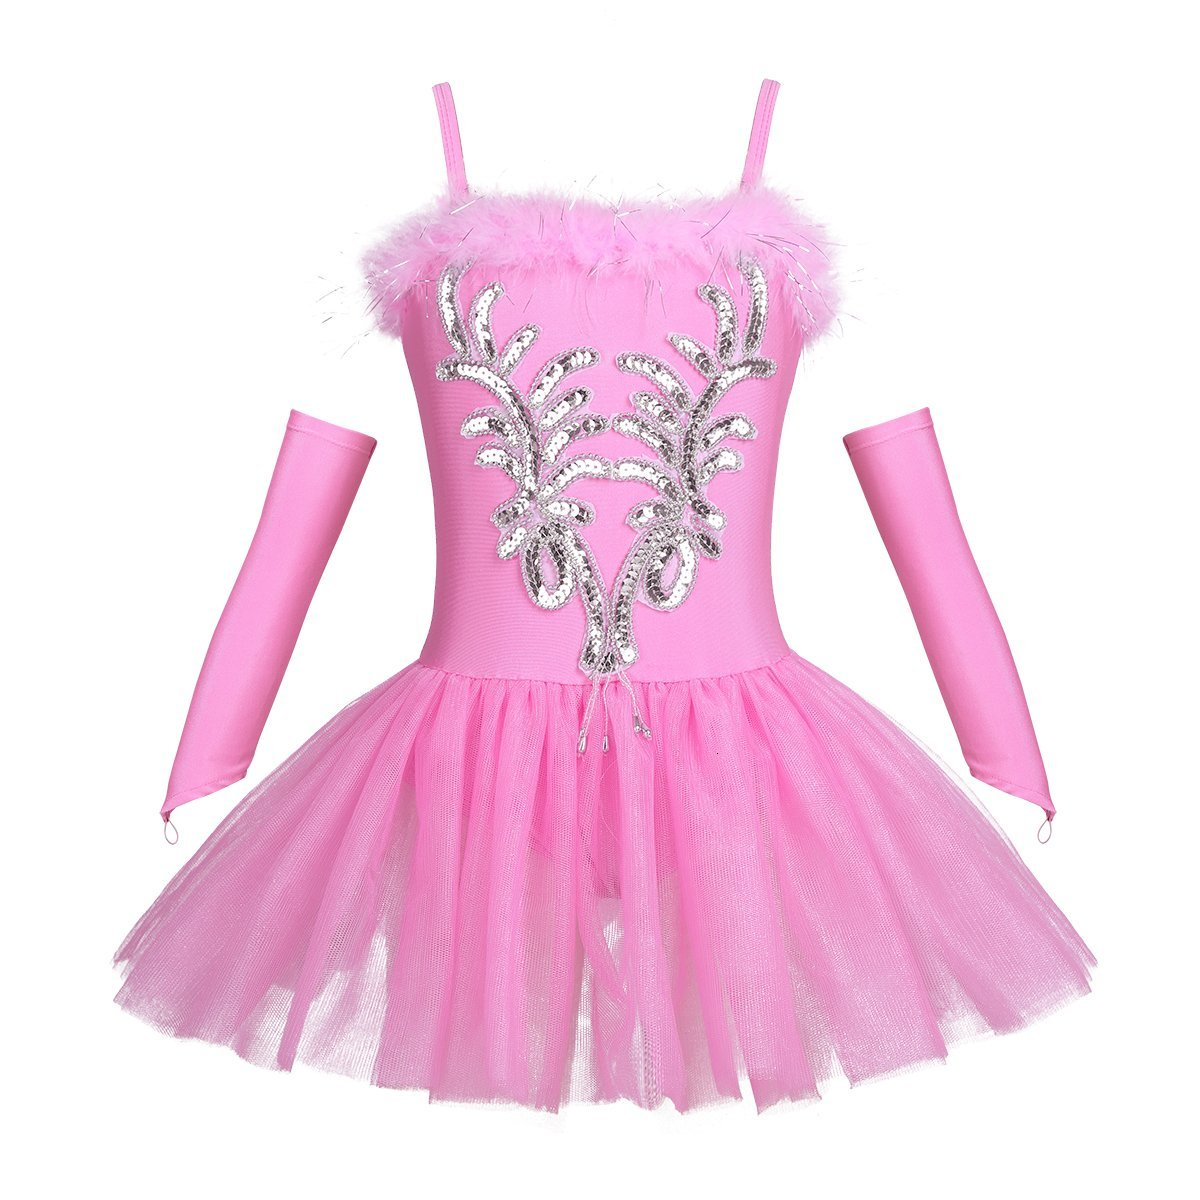 <font><b>TiaoBug</b></font> Girls Sequined Beads Swan Costume Ballet Dance Leotard Spaghtetti Tutu <font><b>Dress</b></font> with Gloves Hair Clip image